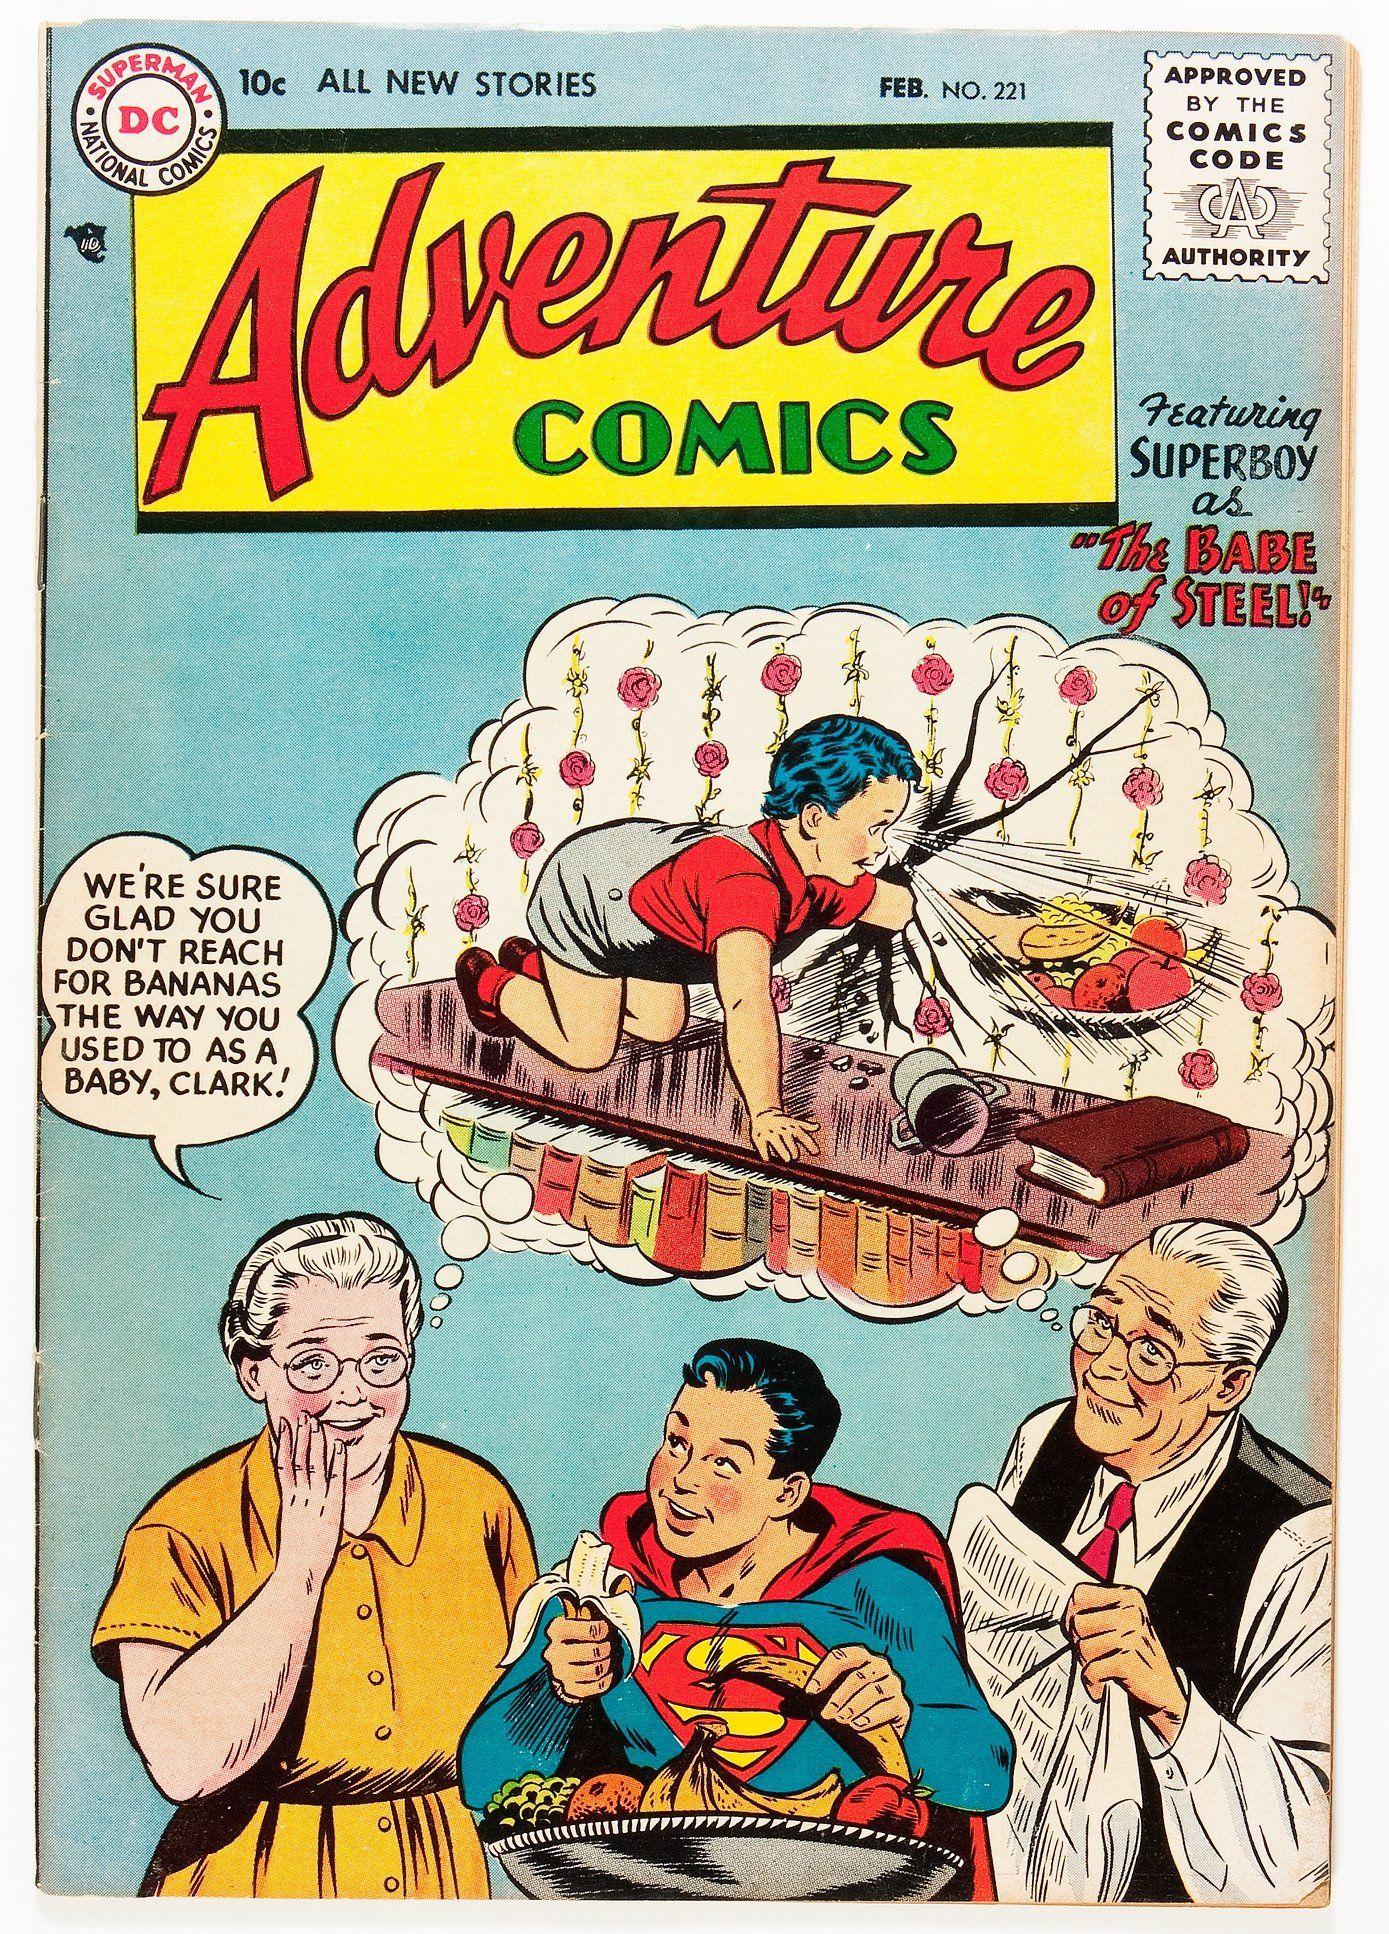 Adventure Comics #221 (DC, 1956) - Before our comic book heroes ...